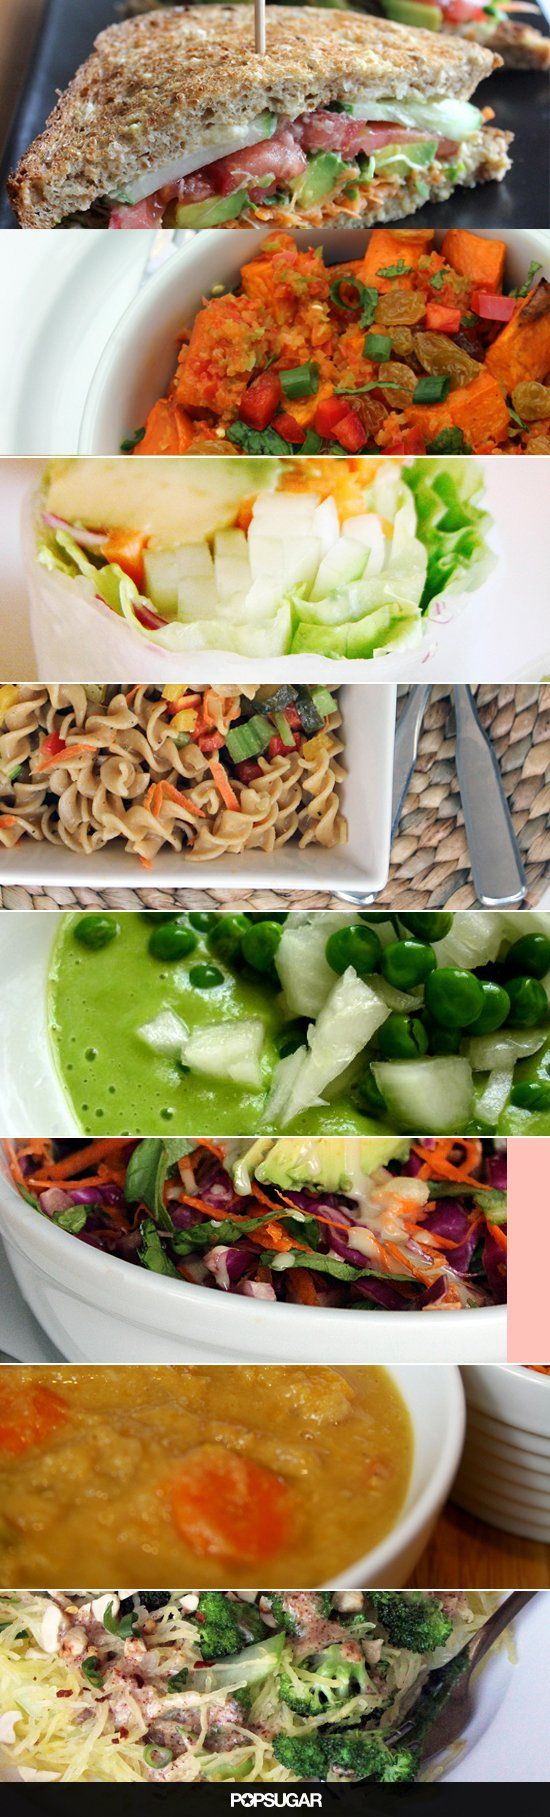 Pin for Later: 32 Vegan Lunches You Can Take to Work